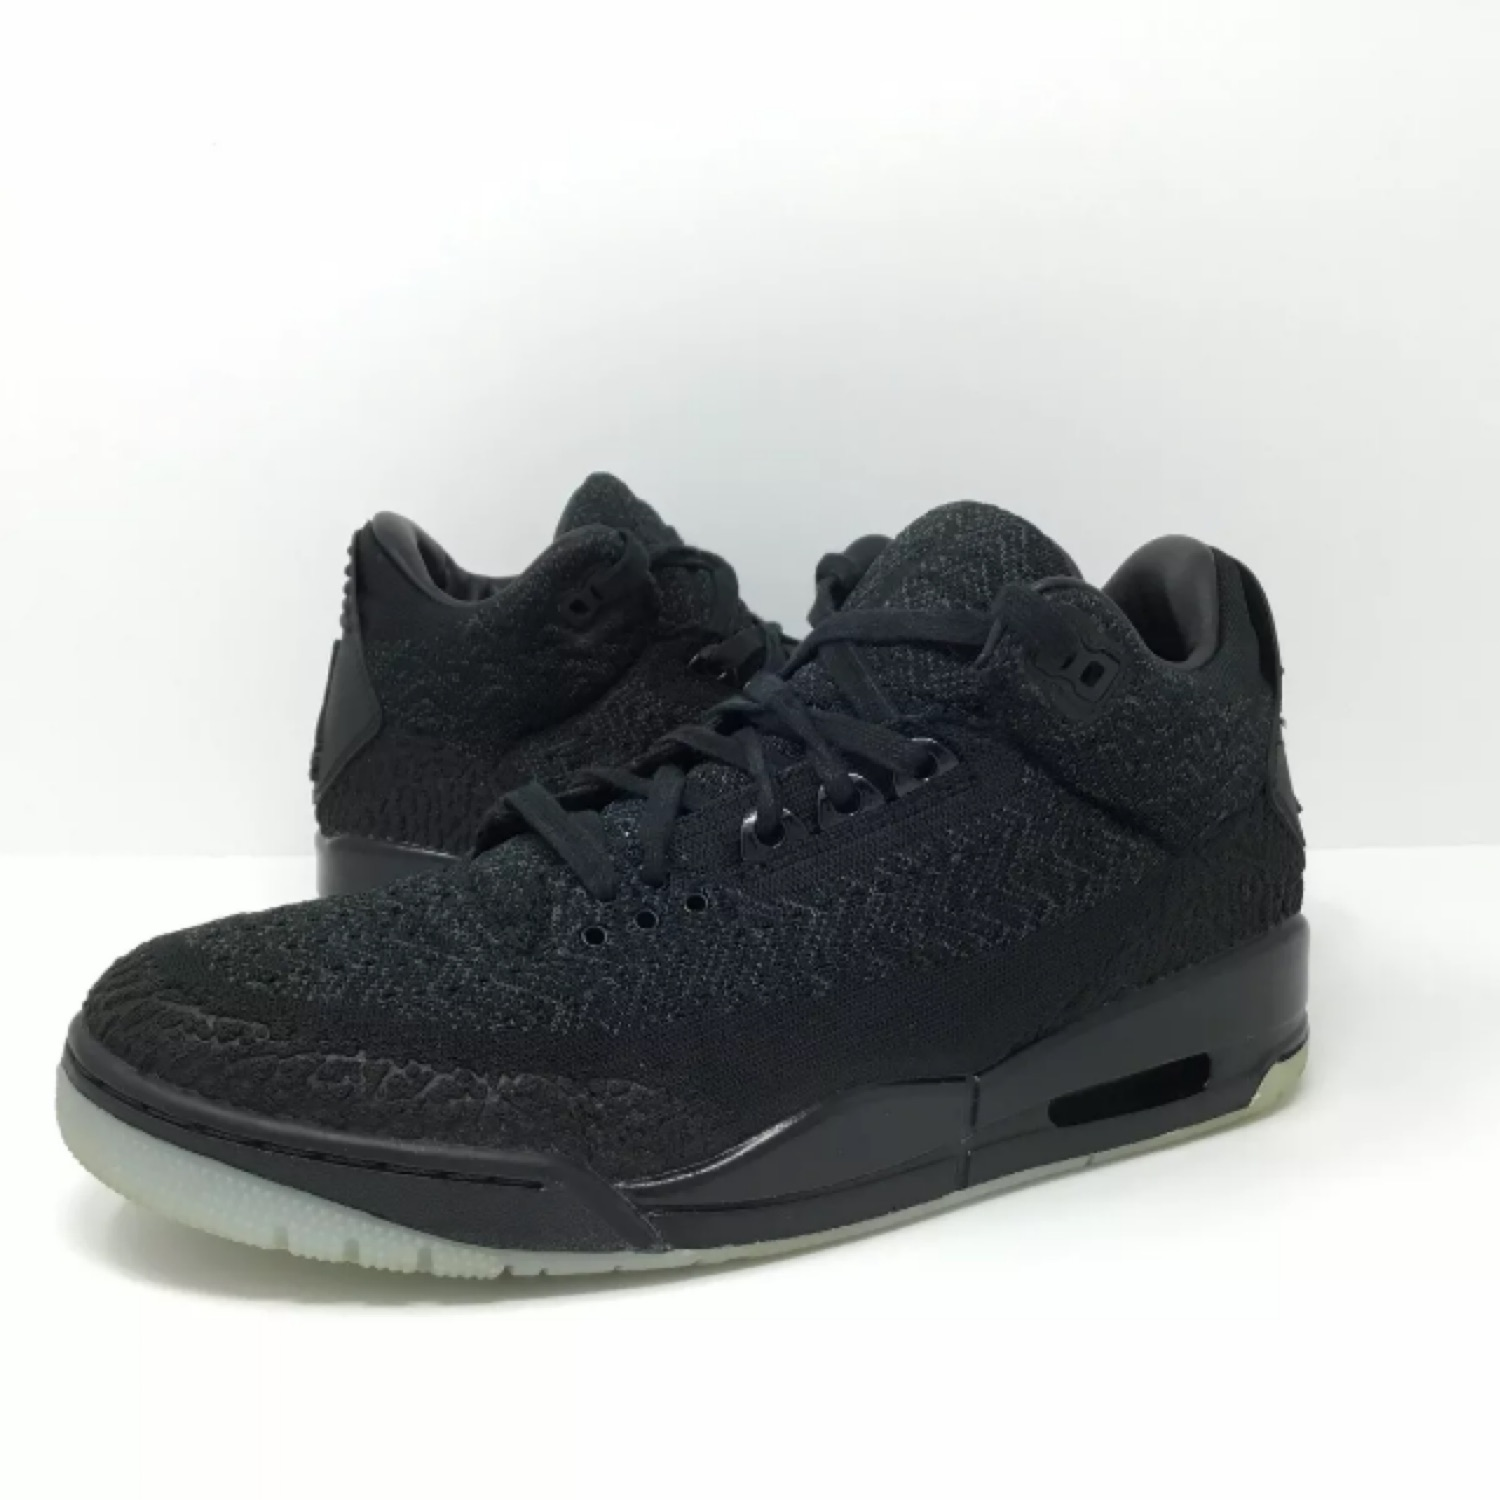 buy popular 358cc 4ecc0 Air Jordan 3 Iii Black Flyknit Size 9.5 Used